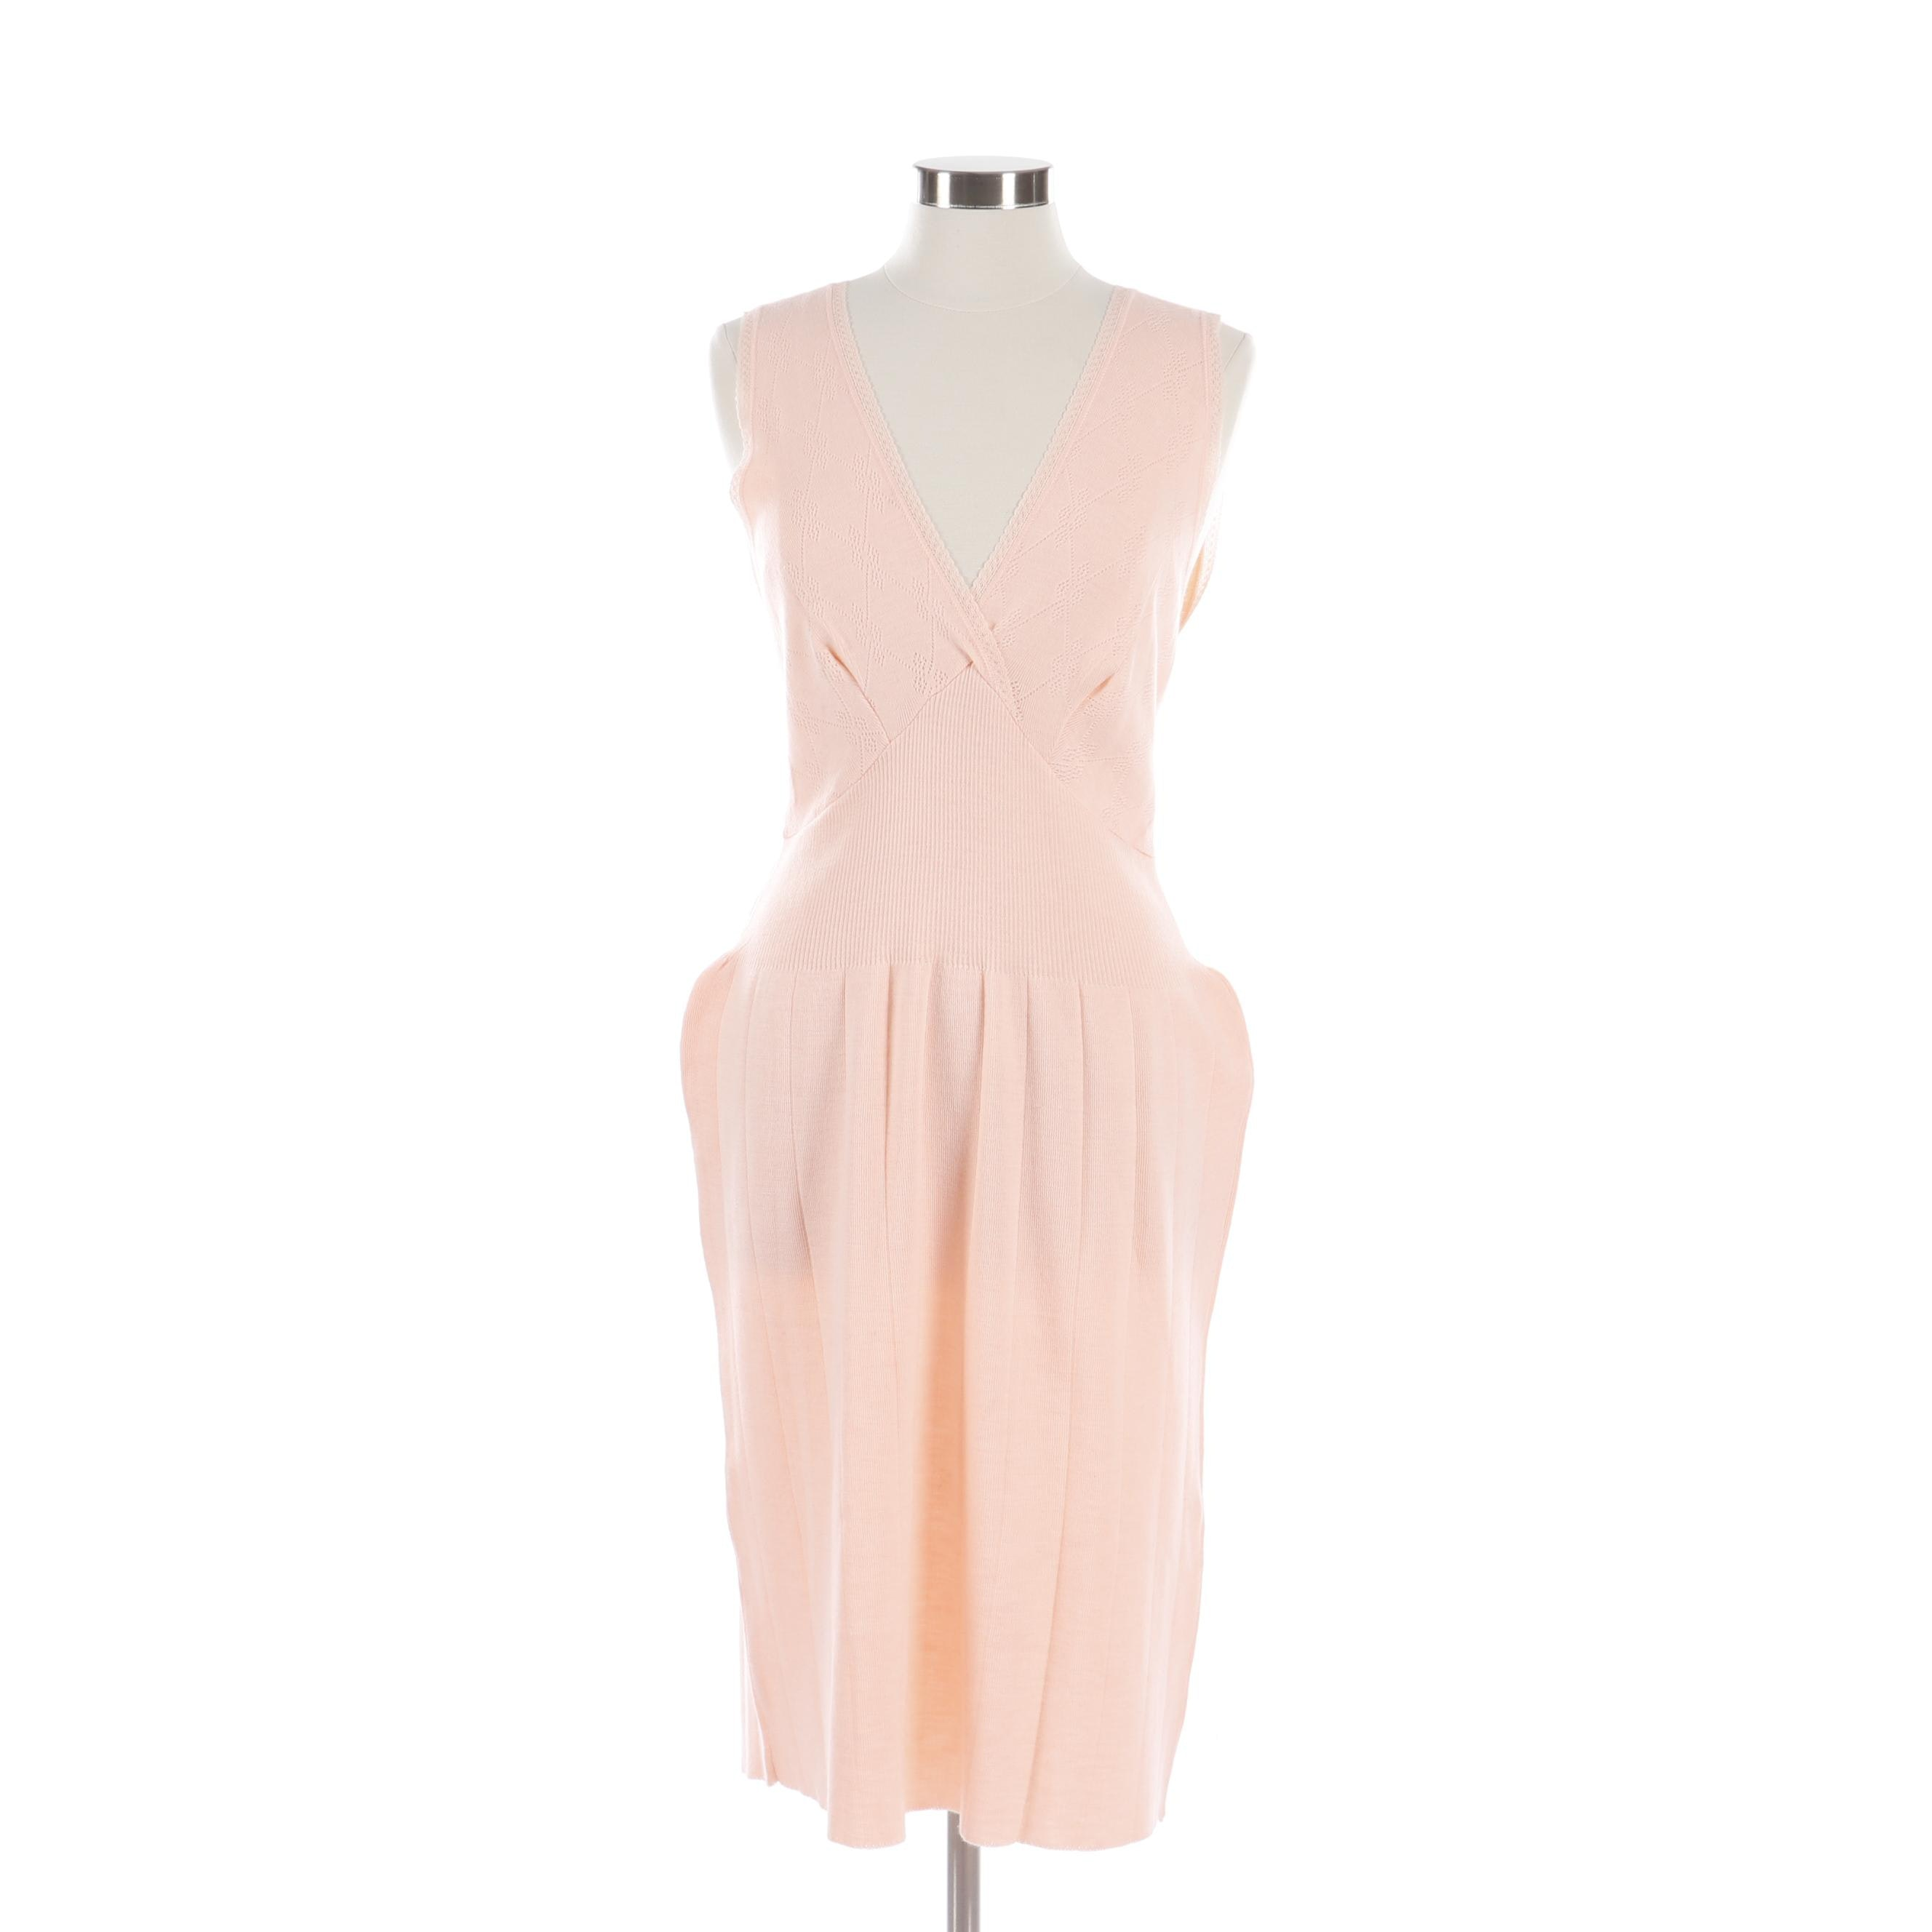 Judy Maxwell Pink Sleeveless Sweater Dress